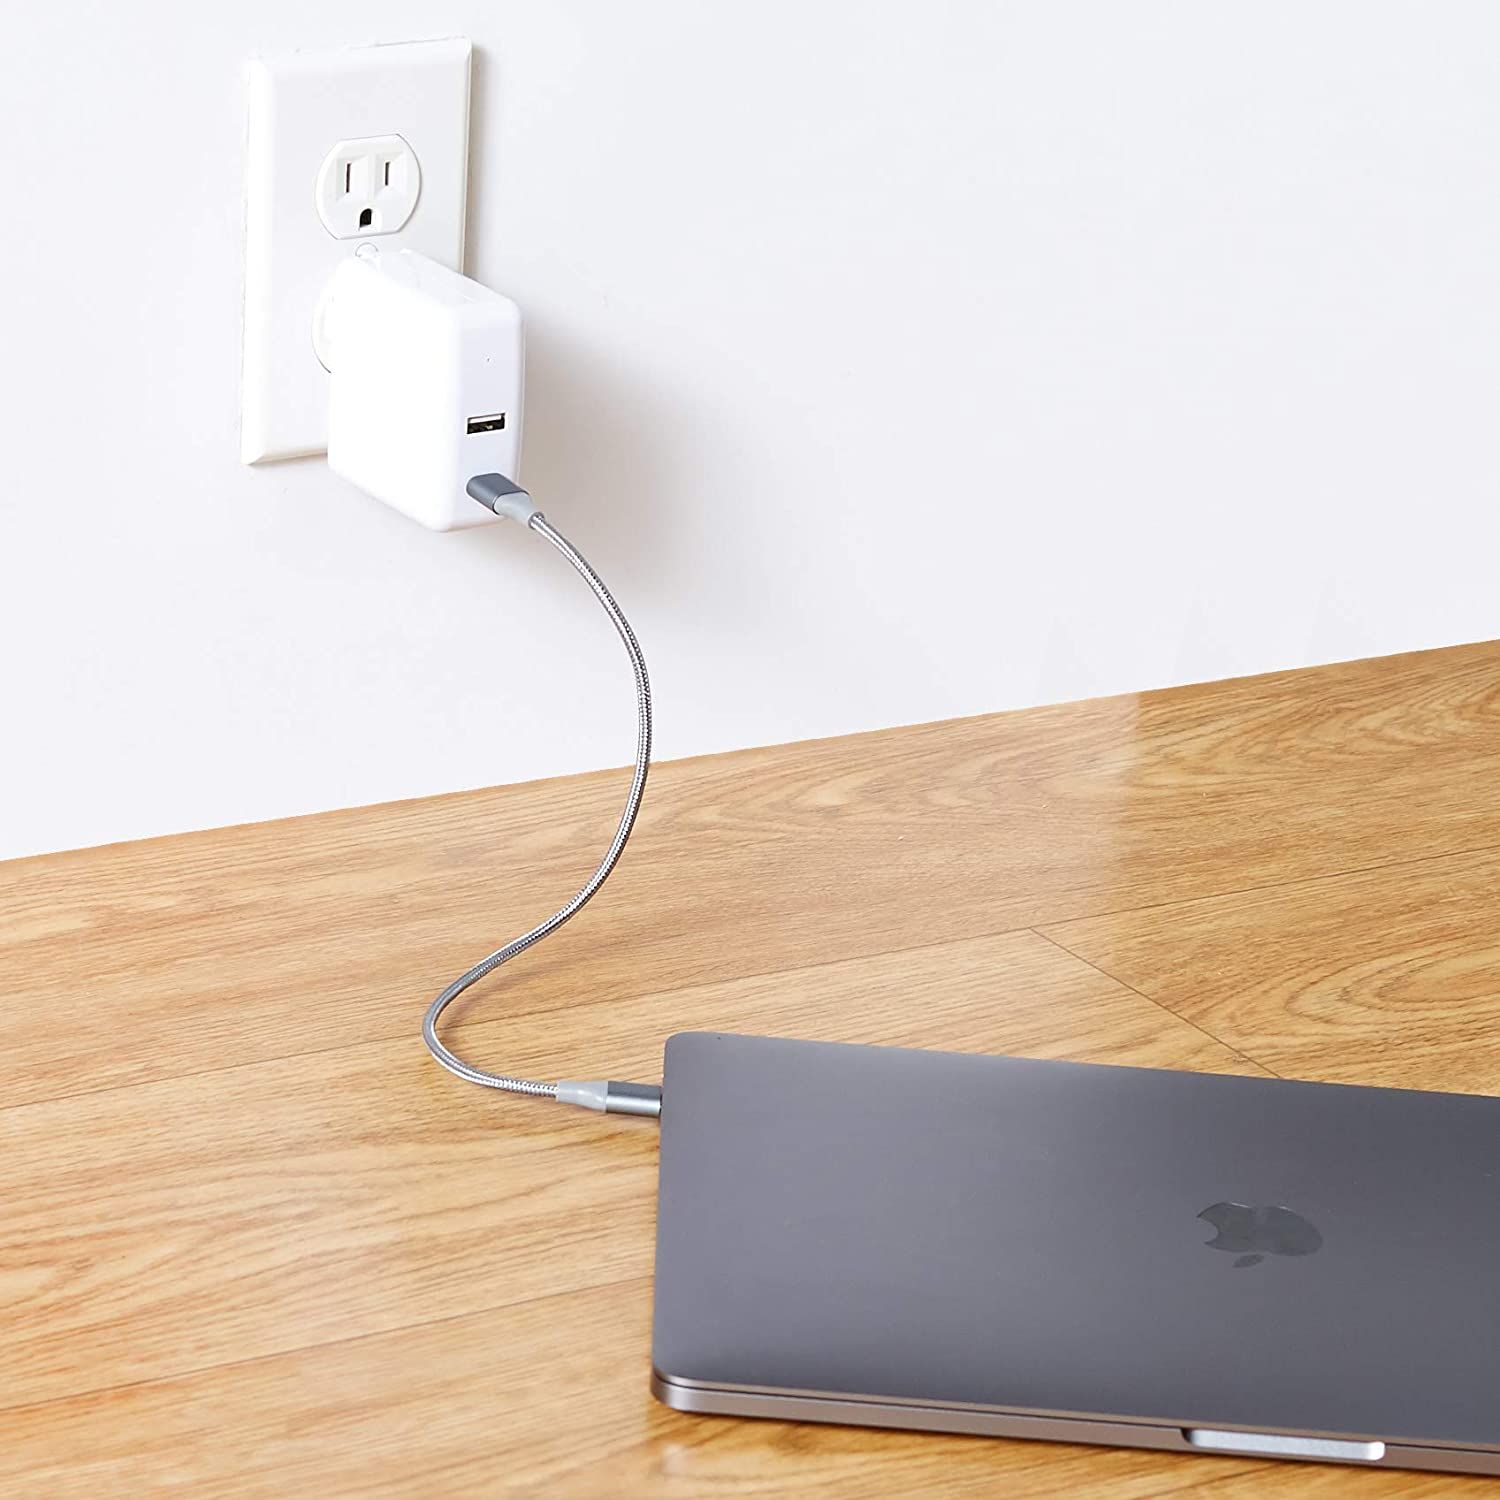 Black Basics 5-Port Wall Charger with 4 USB-A Ports and 1 USB-C Port with 30W Power Delivery 60W